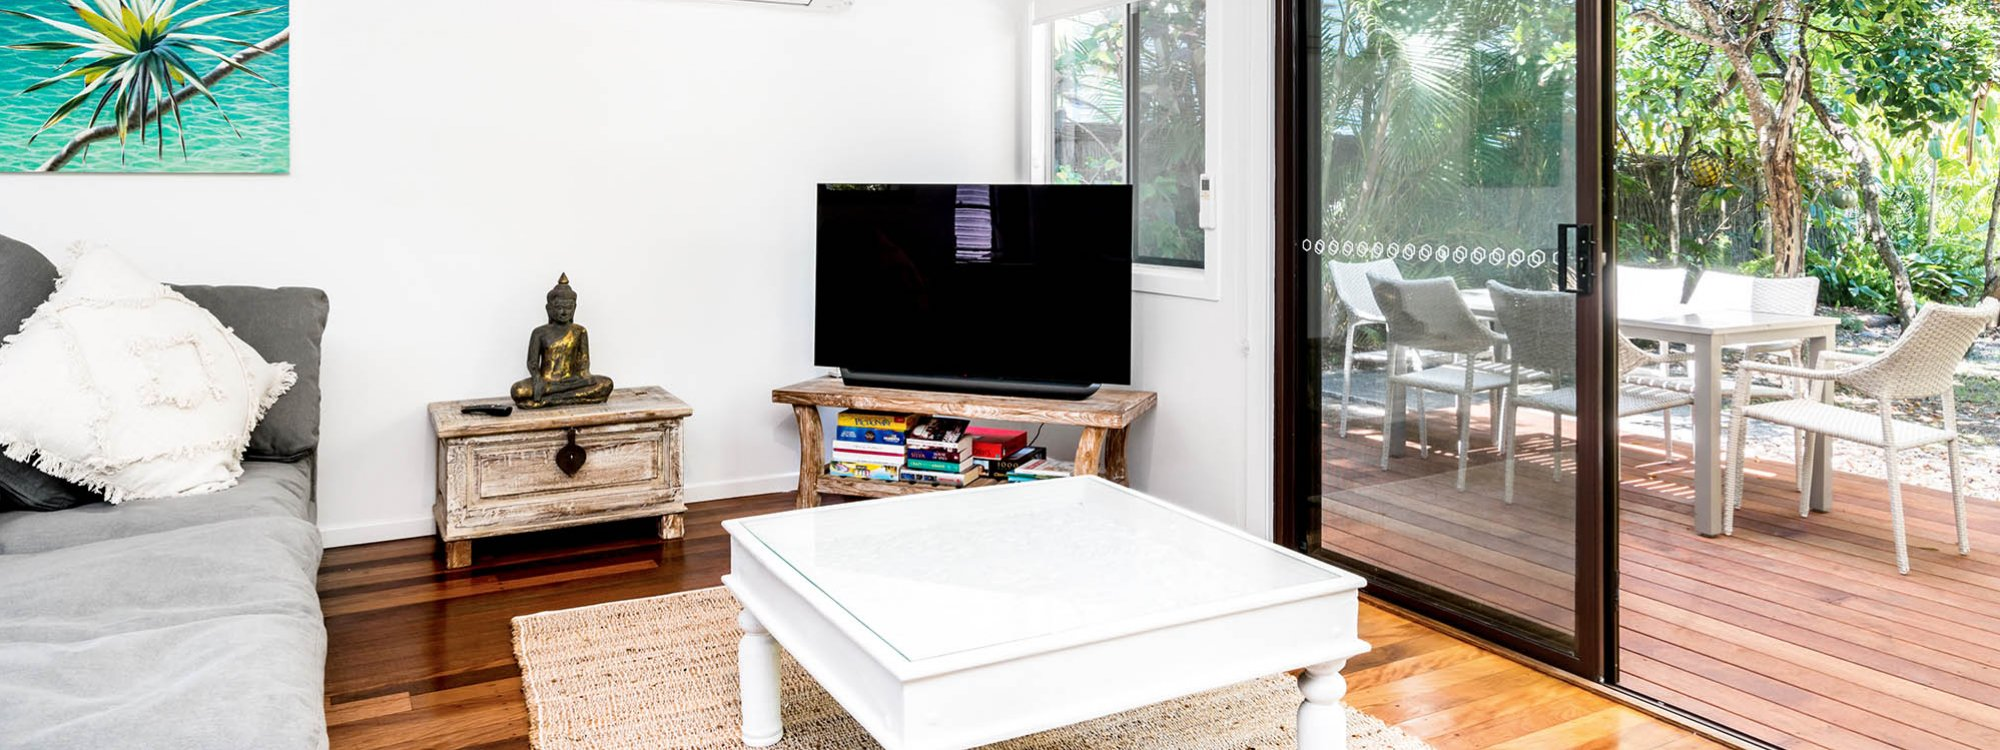 Gigis - Byron Bay - Living Area Looking Out to Rear Deck